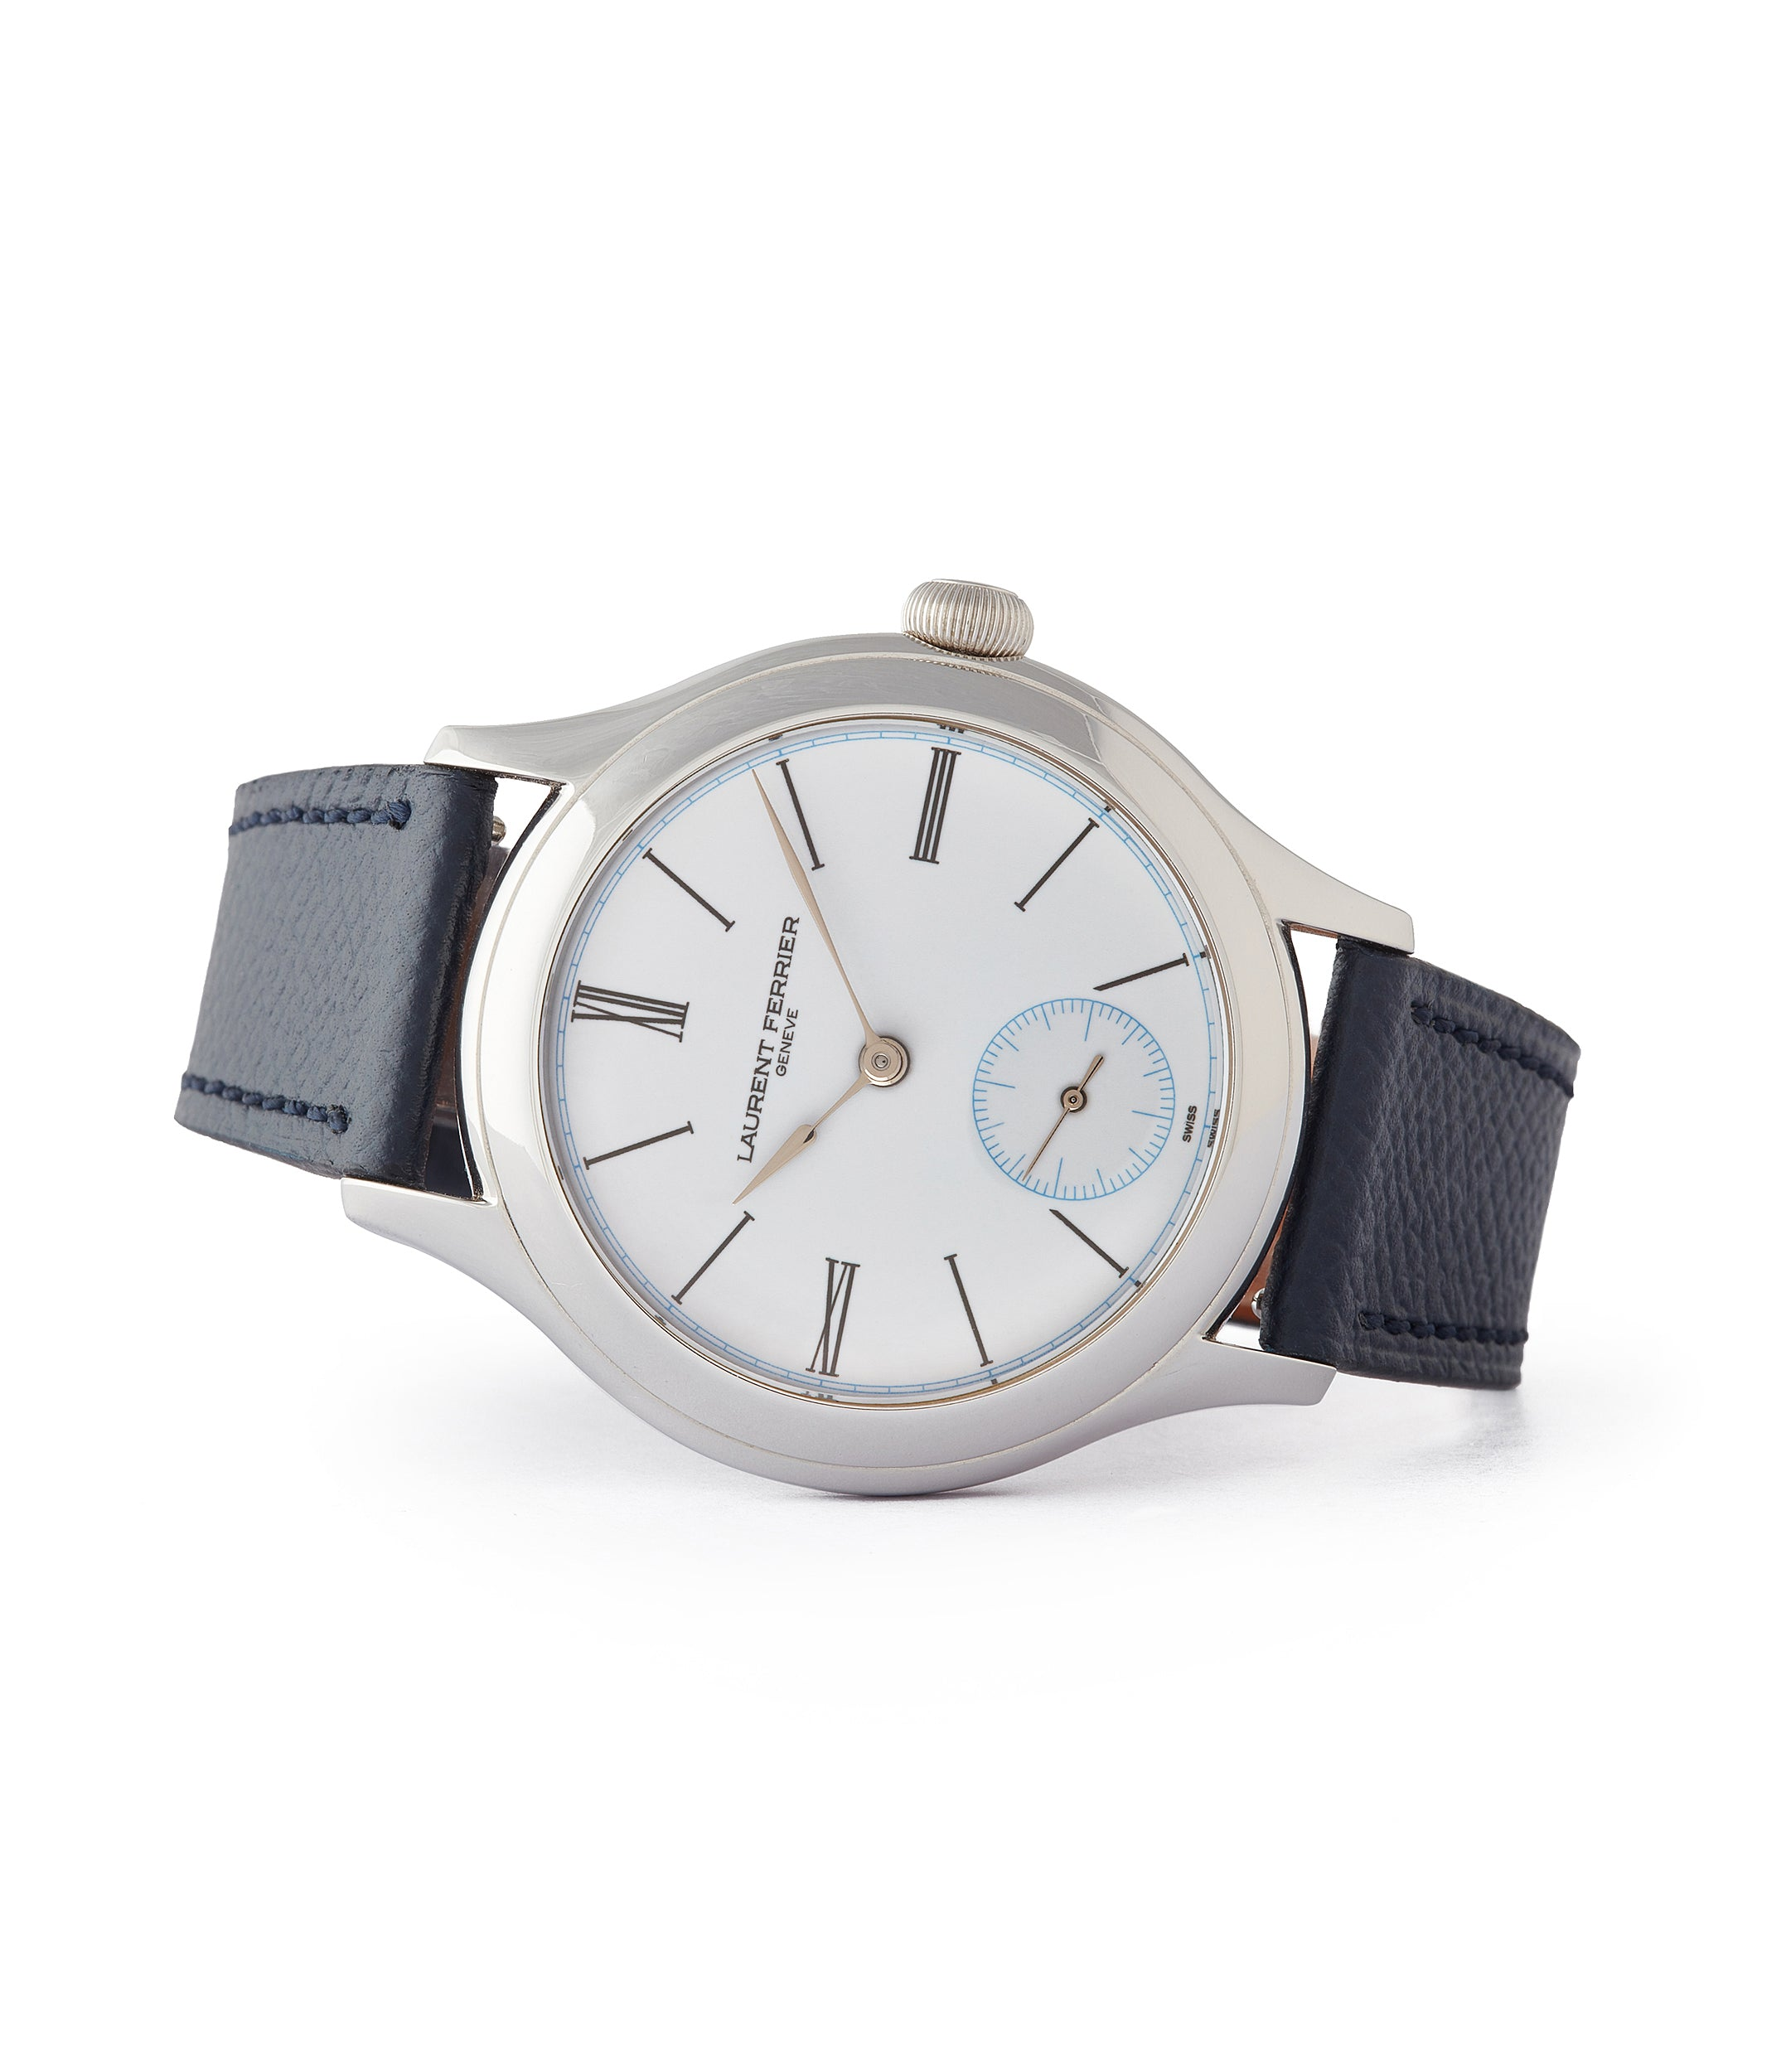 side-shot Galet Micro-rotor Laurent Ferrier platinum white enamel dial limited edition dress watch sale A Collected Man London UK specialist of independent watchmakers